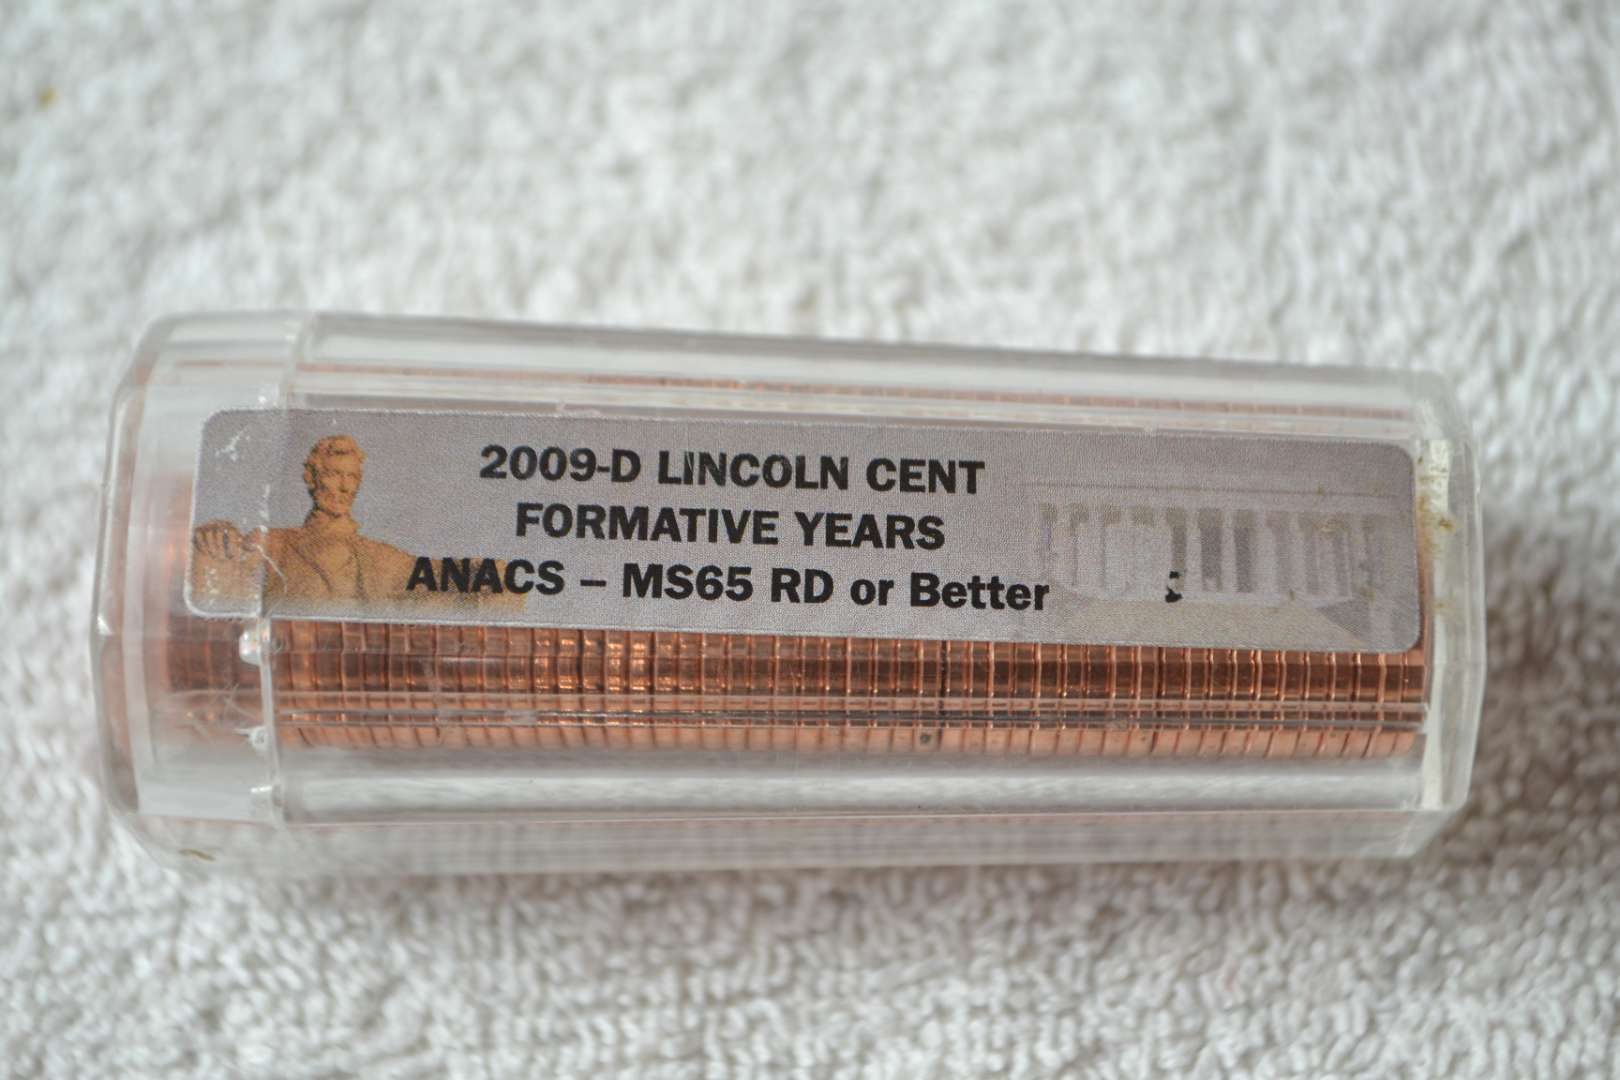 Lot # 234 2009-D LINCOLN CENT ROLL FORMATIVE YEARS ANACS GRADED MS-65 RD OR BETTER